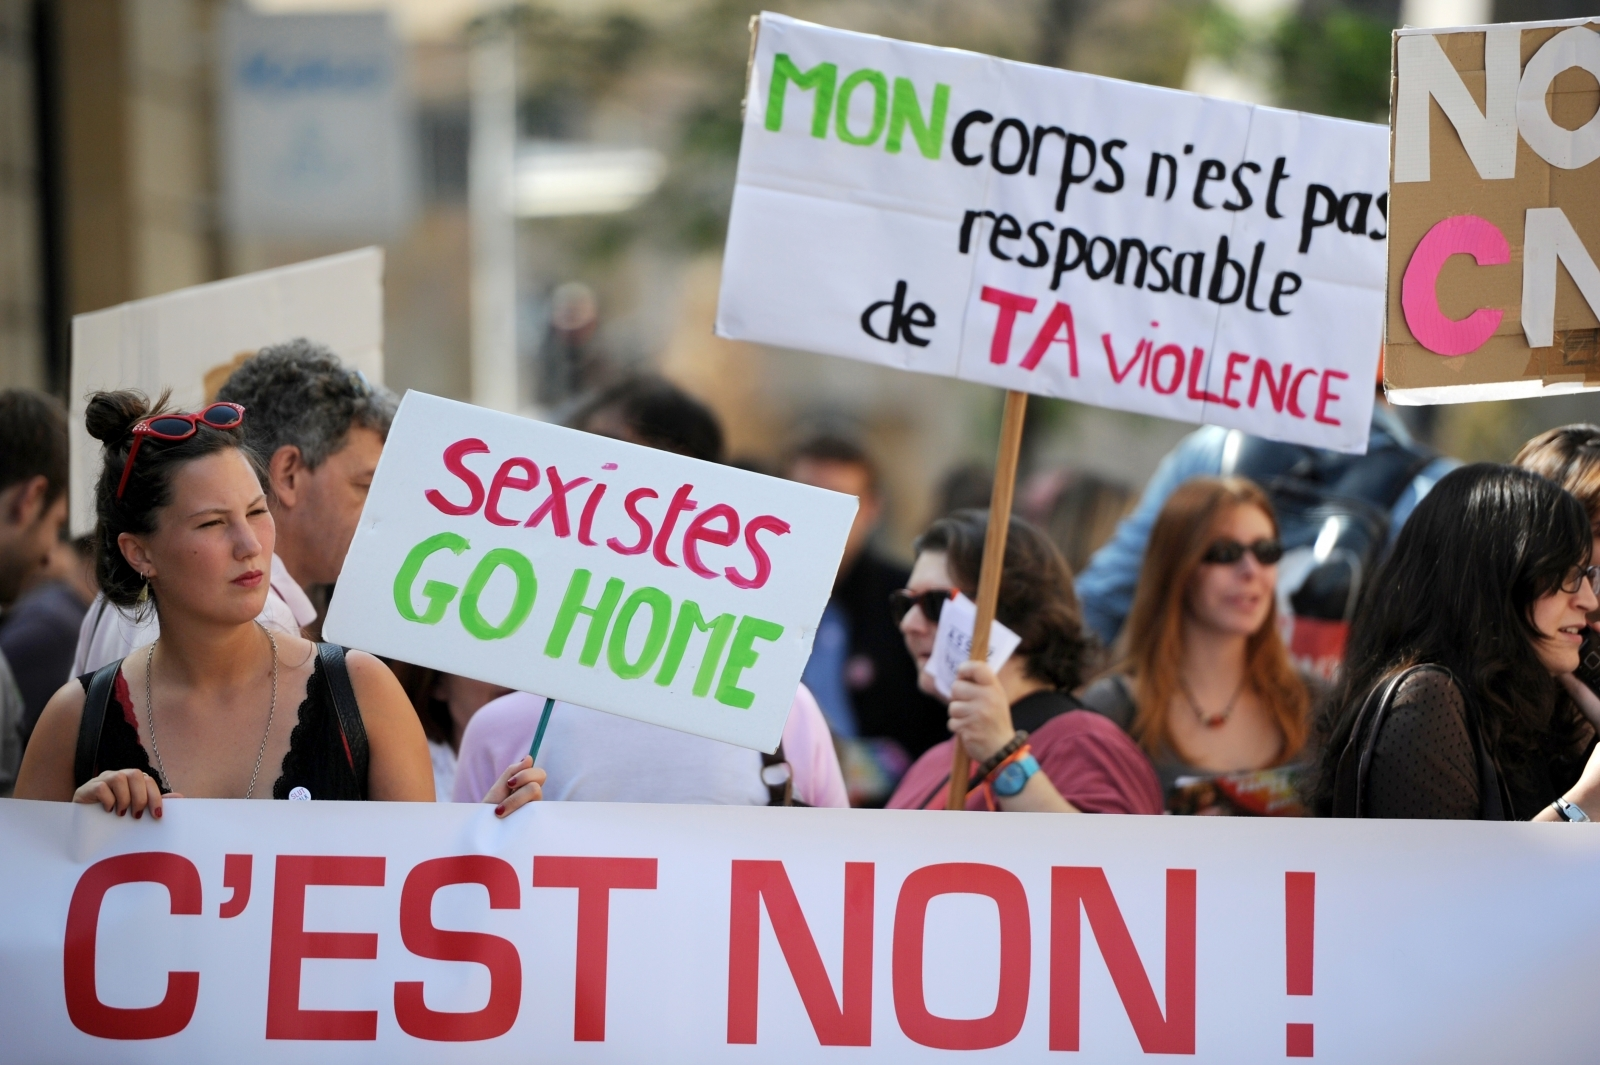 sexual harassment in france and the A man in france has been given a 300-euro (£270) fine for sexual aggression under a new law against street harassment the man, 31, has also been sentenced to three months in prison for what the judge ruled was an outright case of sexual aggression against the woman, and the attack on the driver.